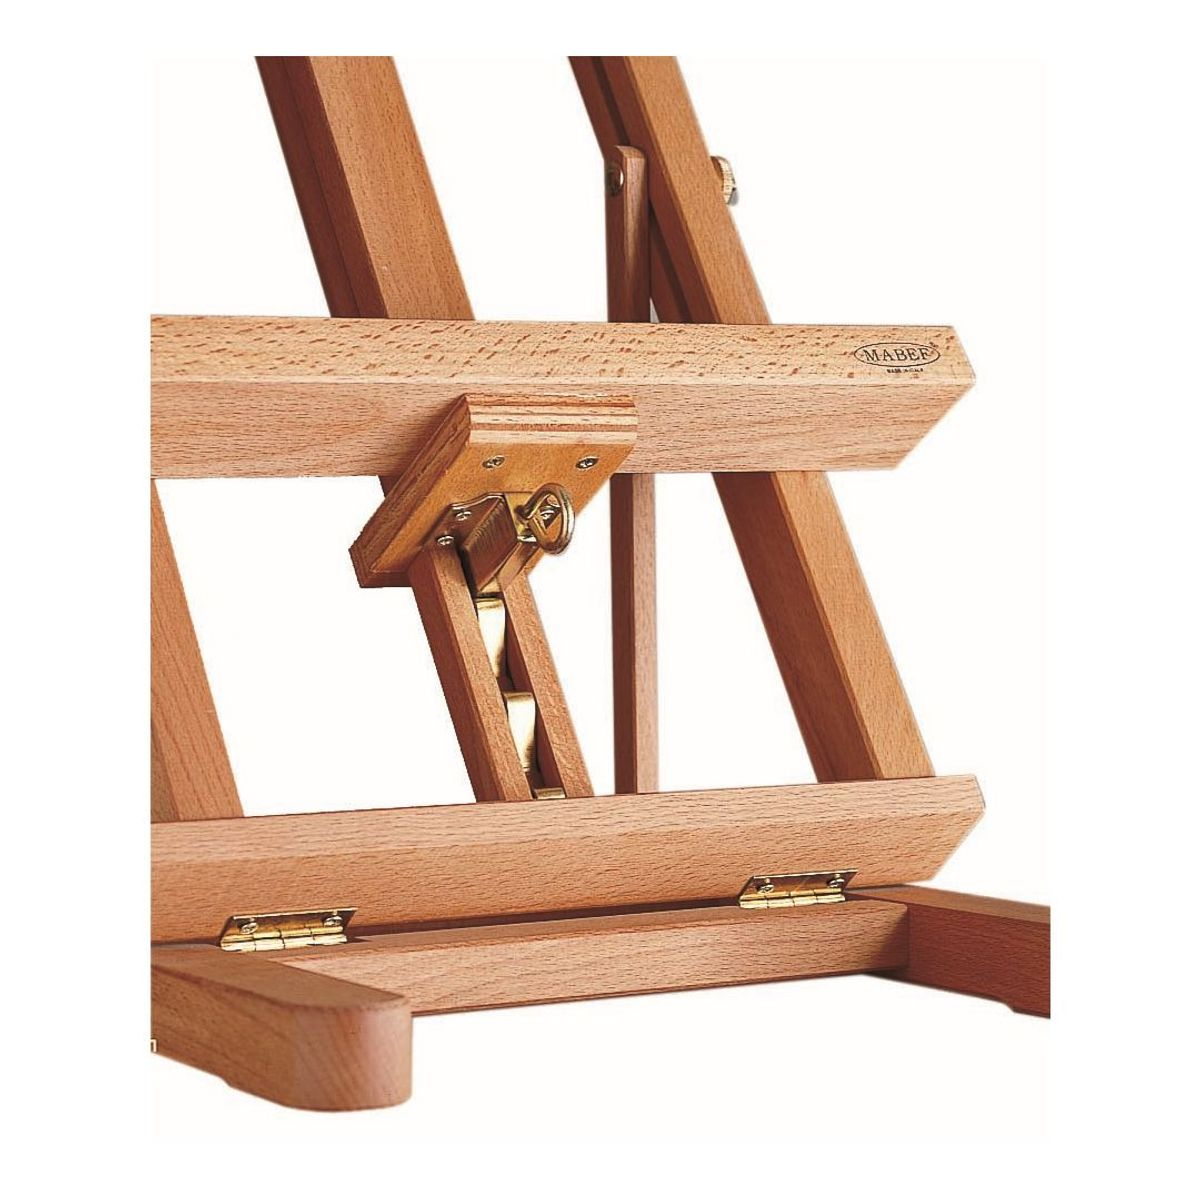 Mabef beech wood super table easel